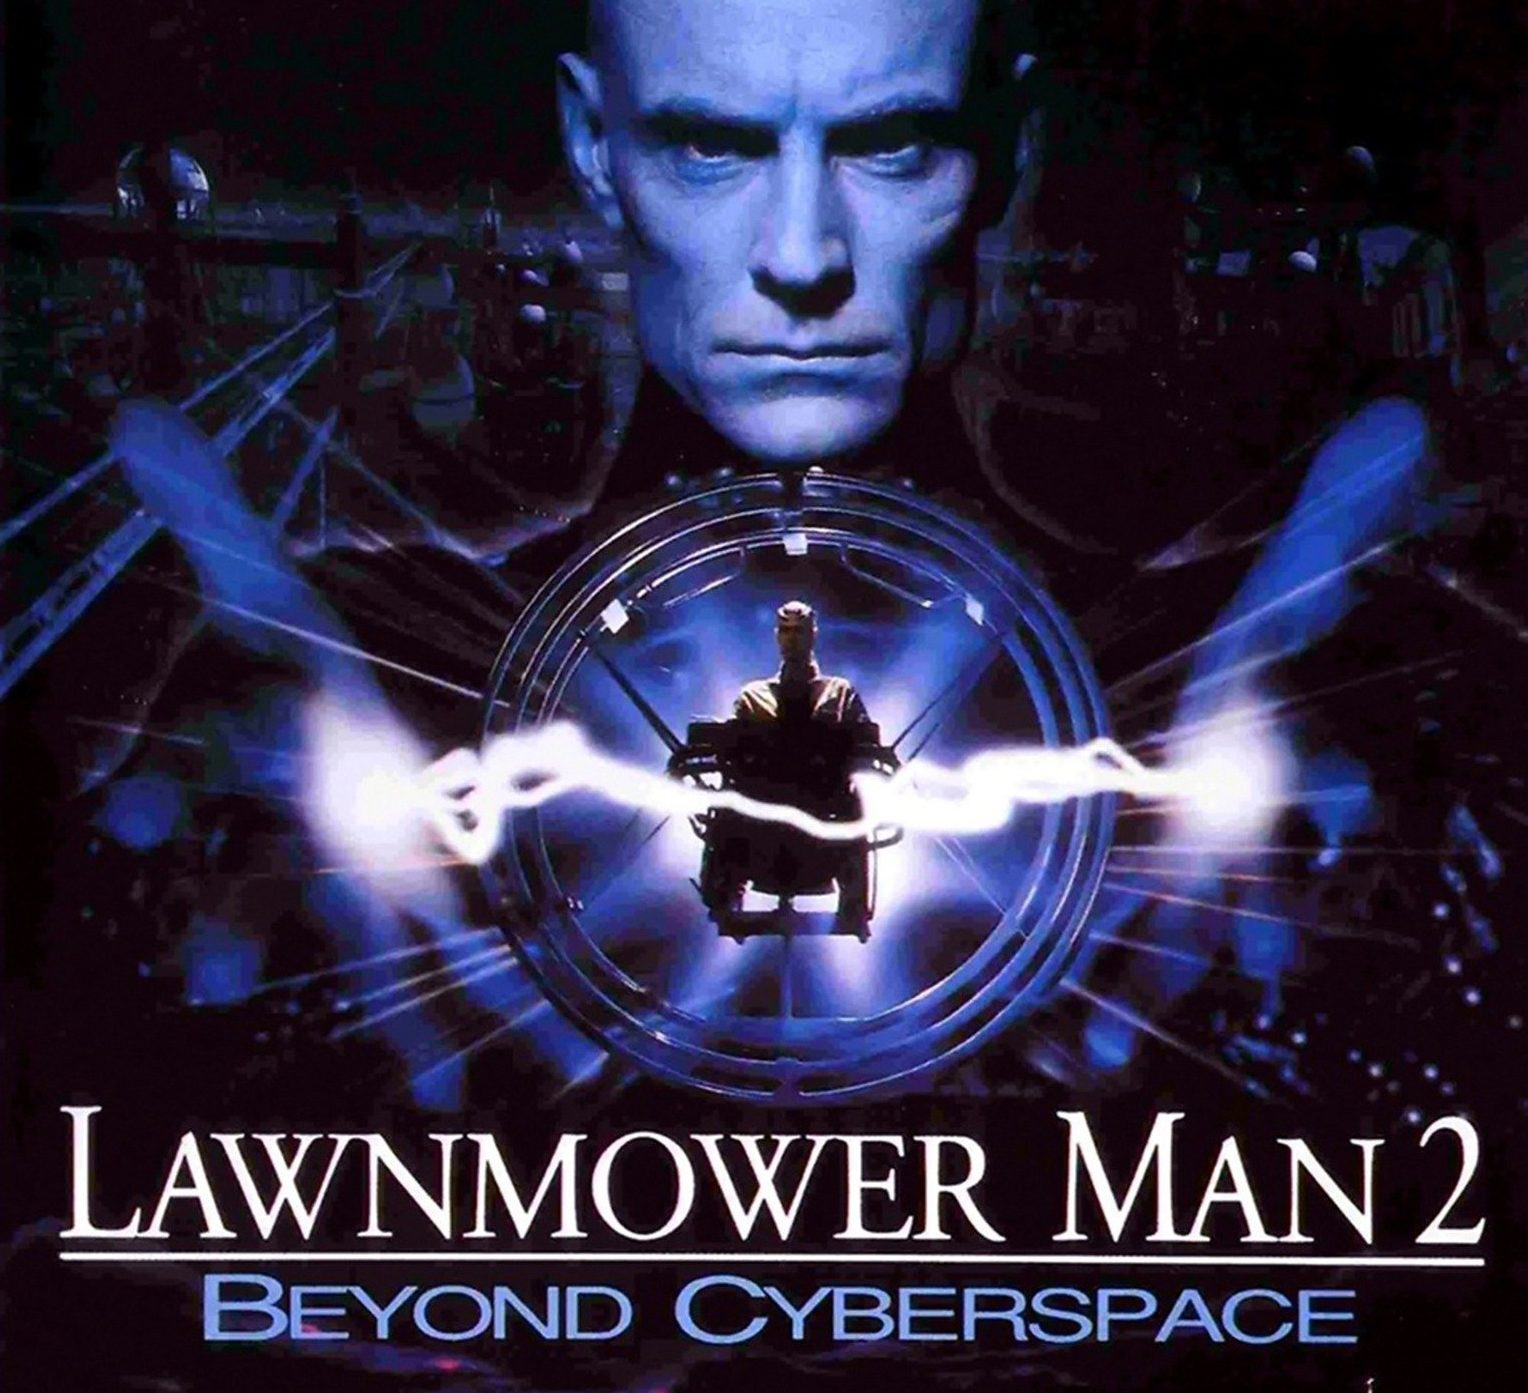 p17578 p v10 ac e1628086082668 10 Mind-Altering Facts You Never Knew About The Lawnmower Man